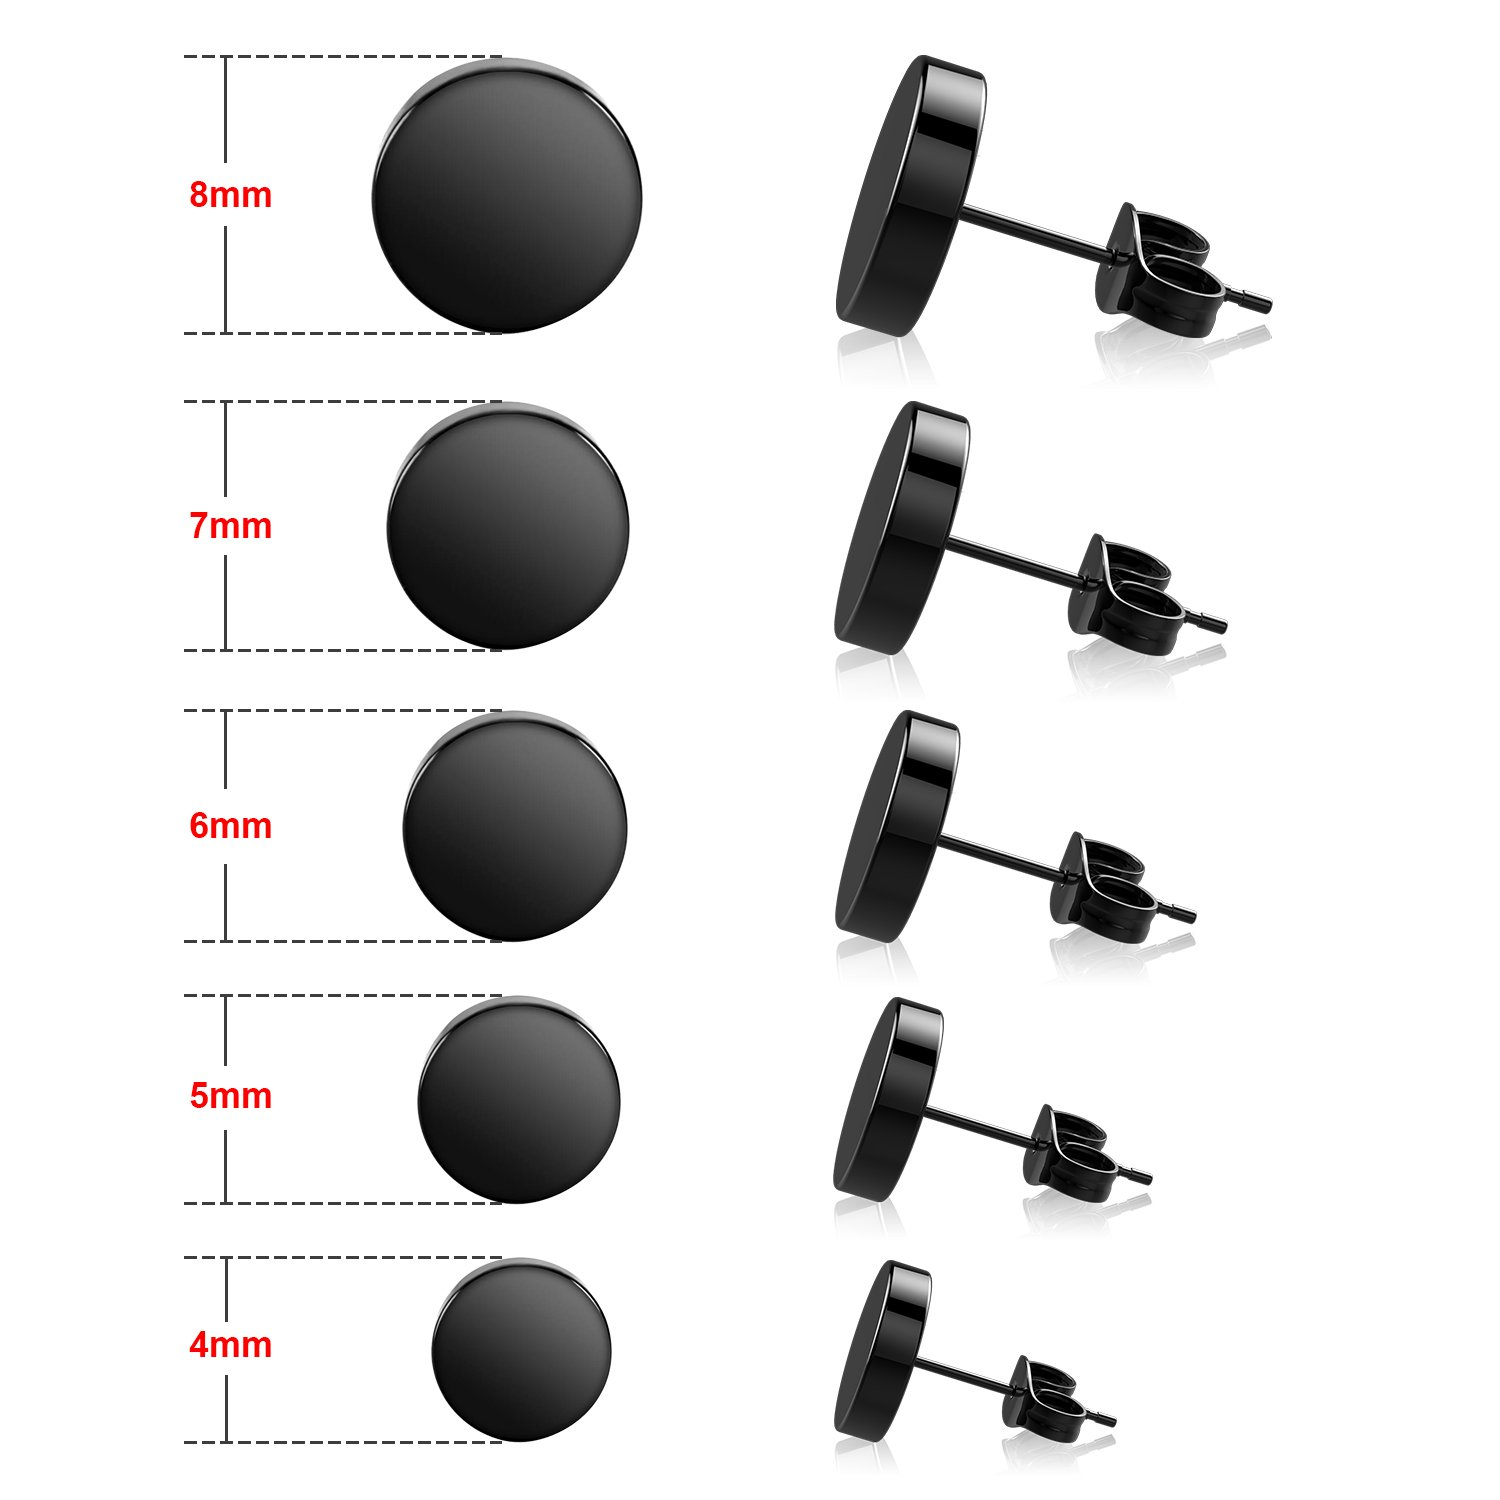 UHIBROS 316L Surgical Stainless Steel Stud Earrings Unisex Tunnel Punk Style Round Mens Womens Hypoallergenic Piercing Ear Stud 5 Pairs 4mm-8mm (Black)